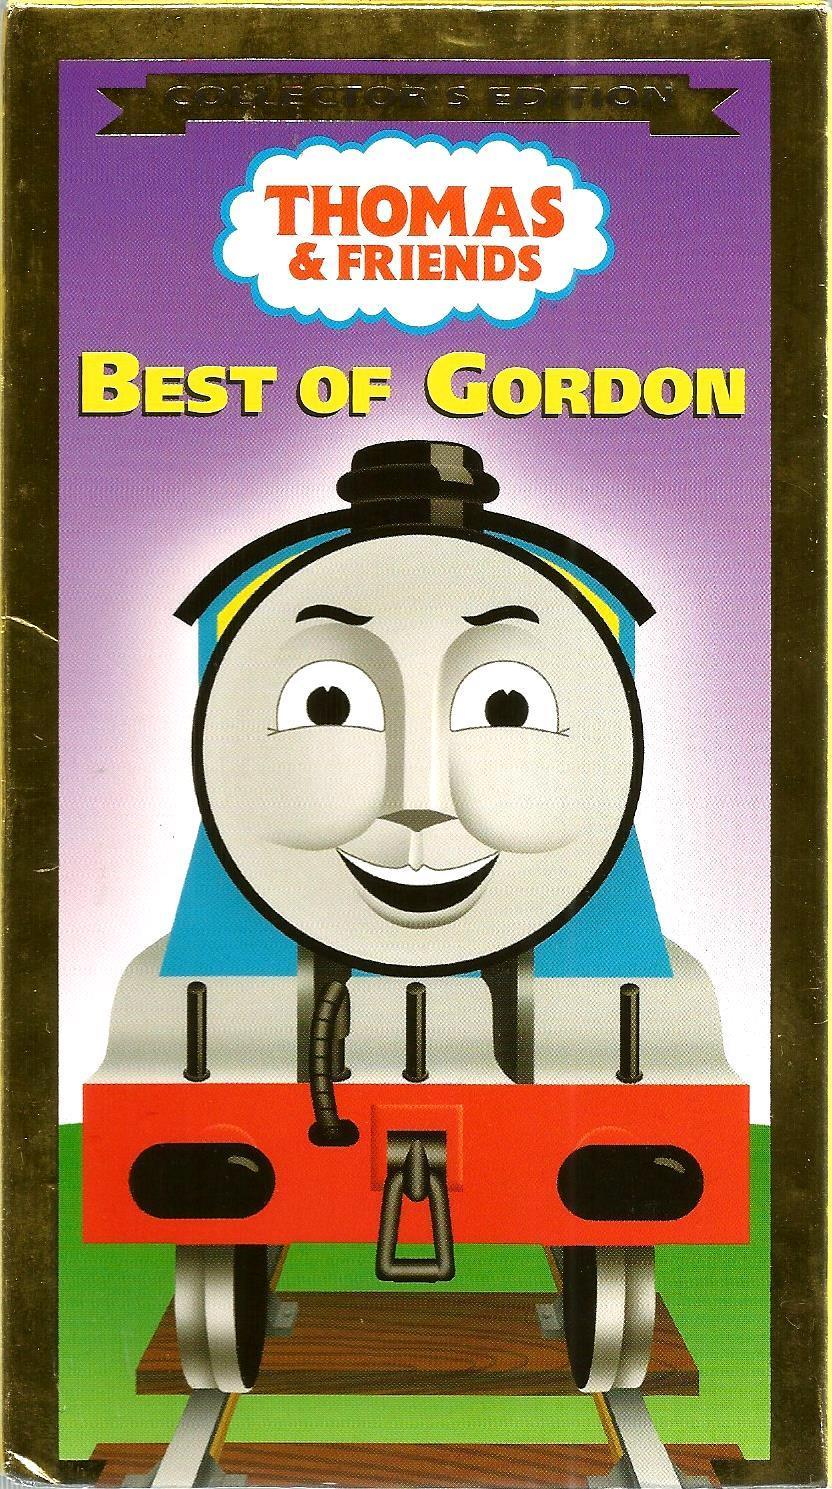 Best of Gordon/Gallery